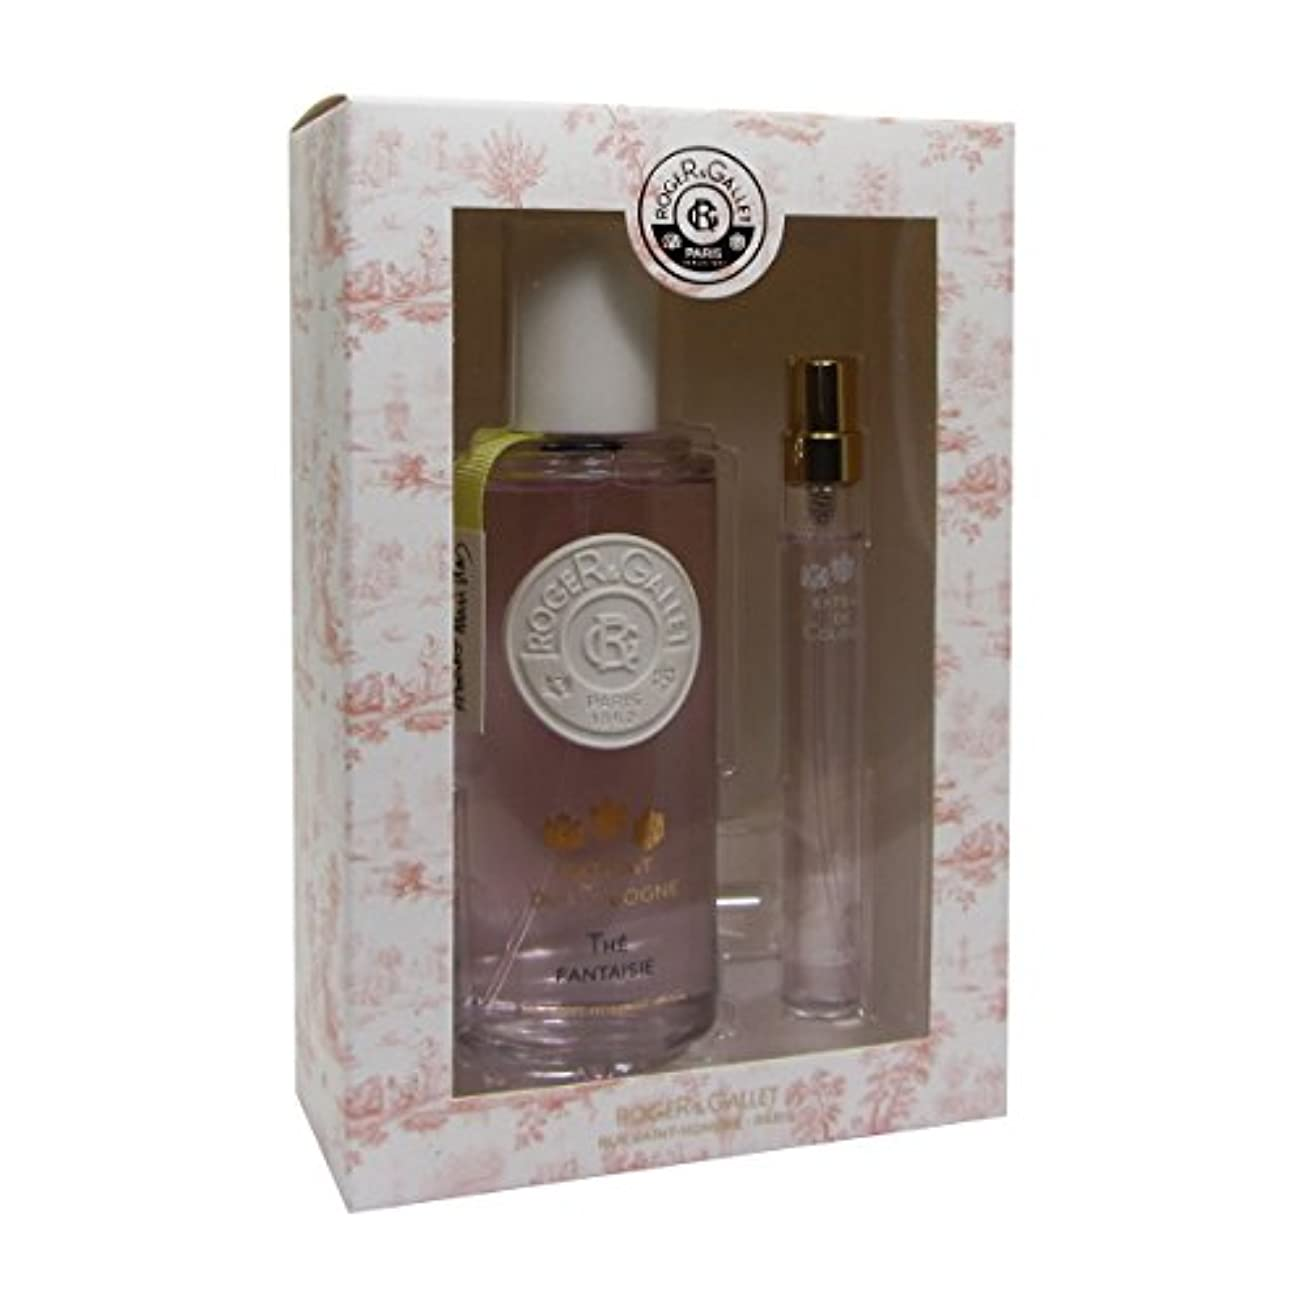 運動フルート制裁Roger Gallet The Fantaisie Cologne Extract 100ml + 10ml [並行輸入品]